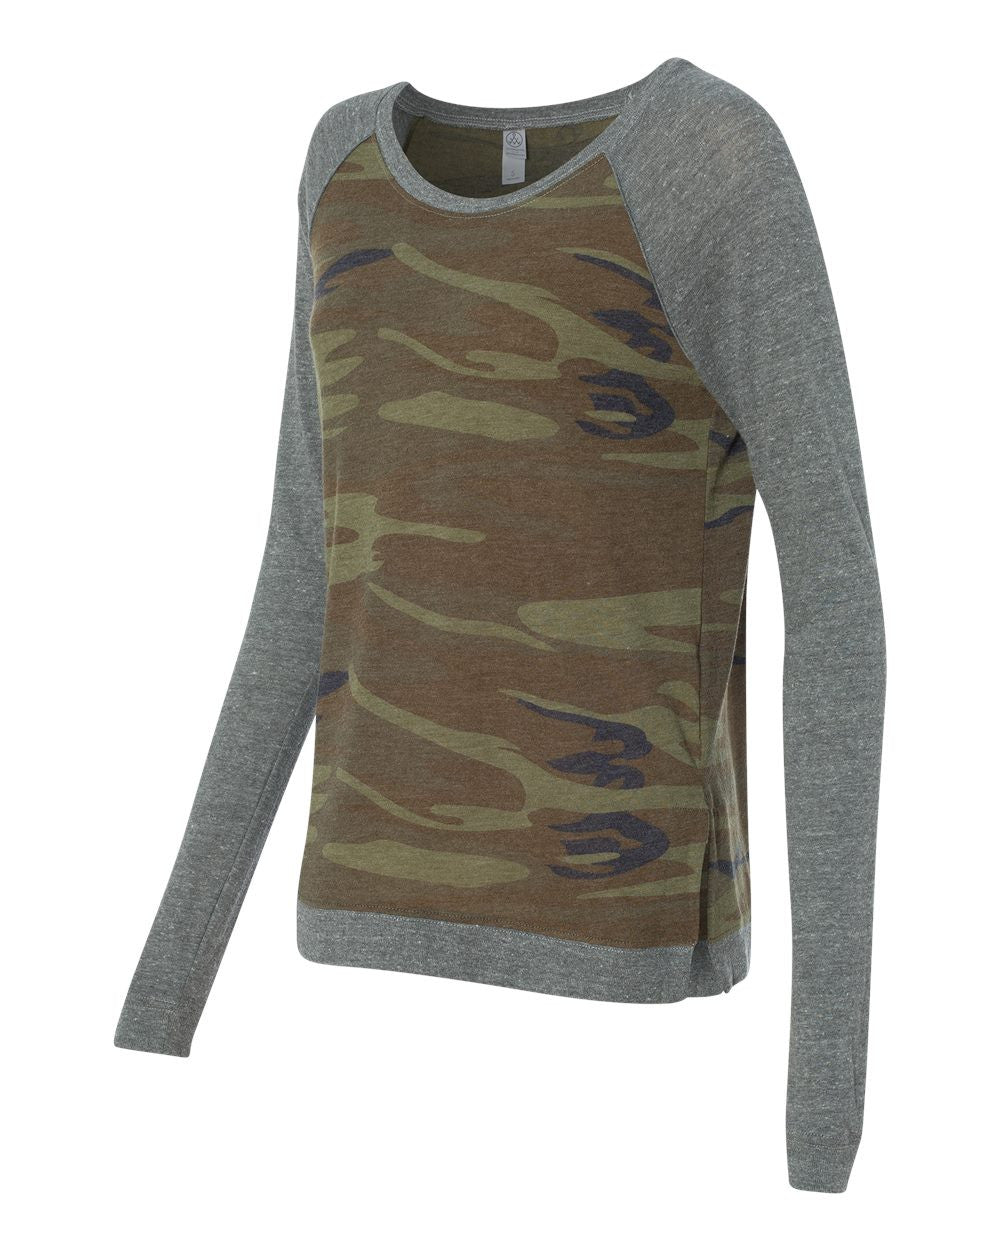 Organic Cotton  Raglan Lightweight Pullover for Women - Discountedrack.com